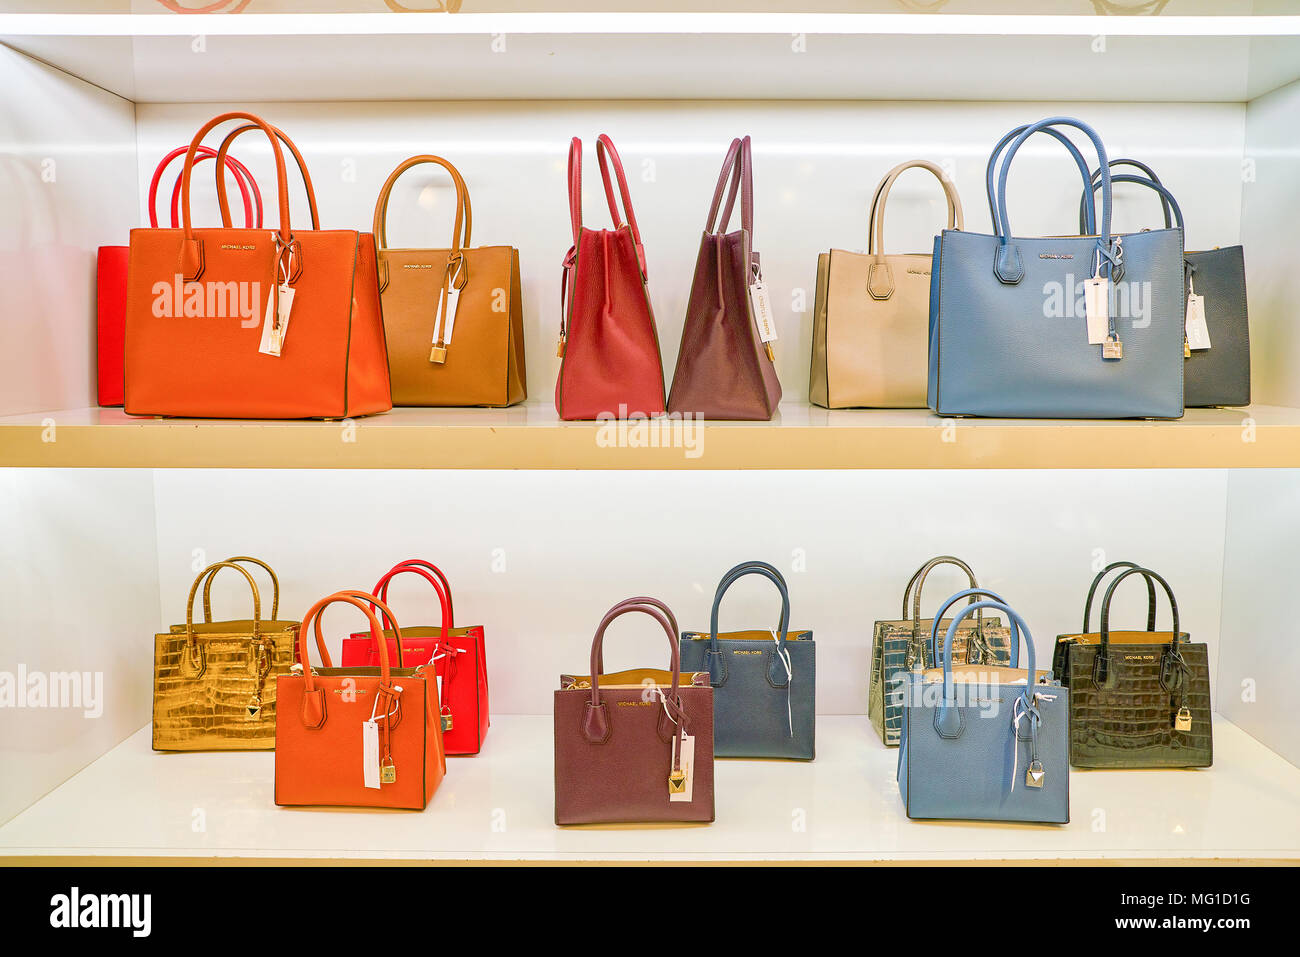 cb1d0b4a9193 MILAN, ITALY - CIRCA NOVEMBER, 2017: Michael Kors bags on display at  Rinascente